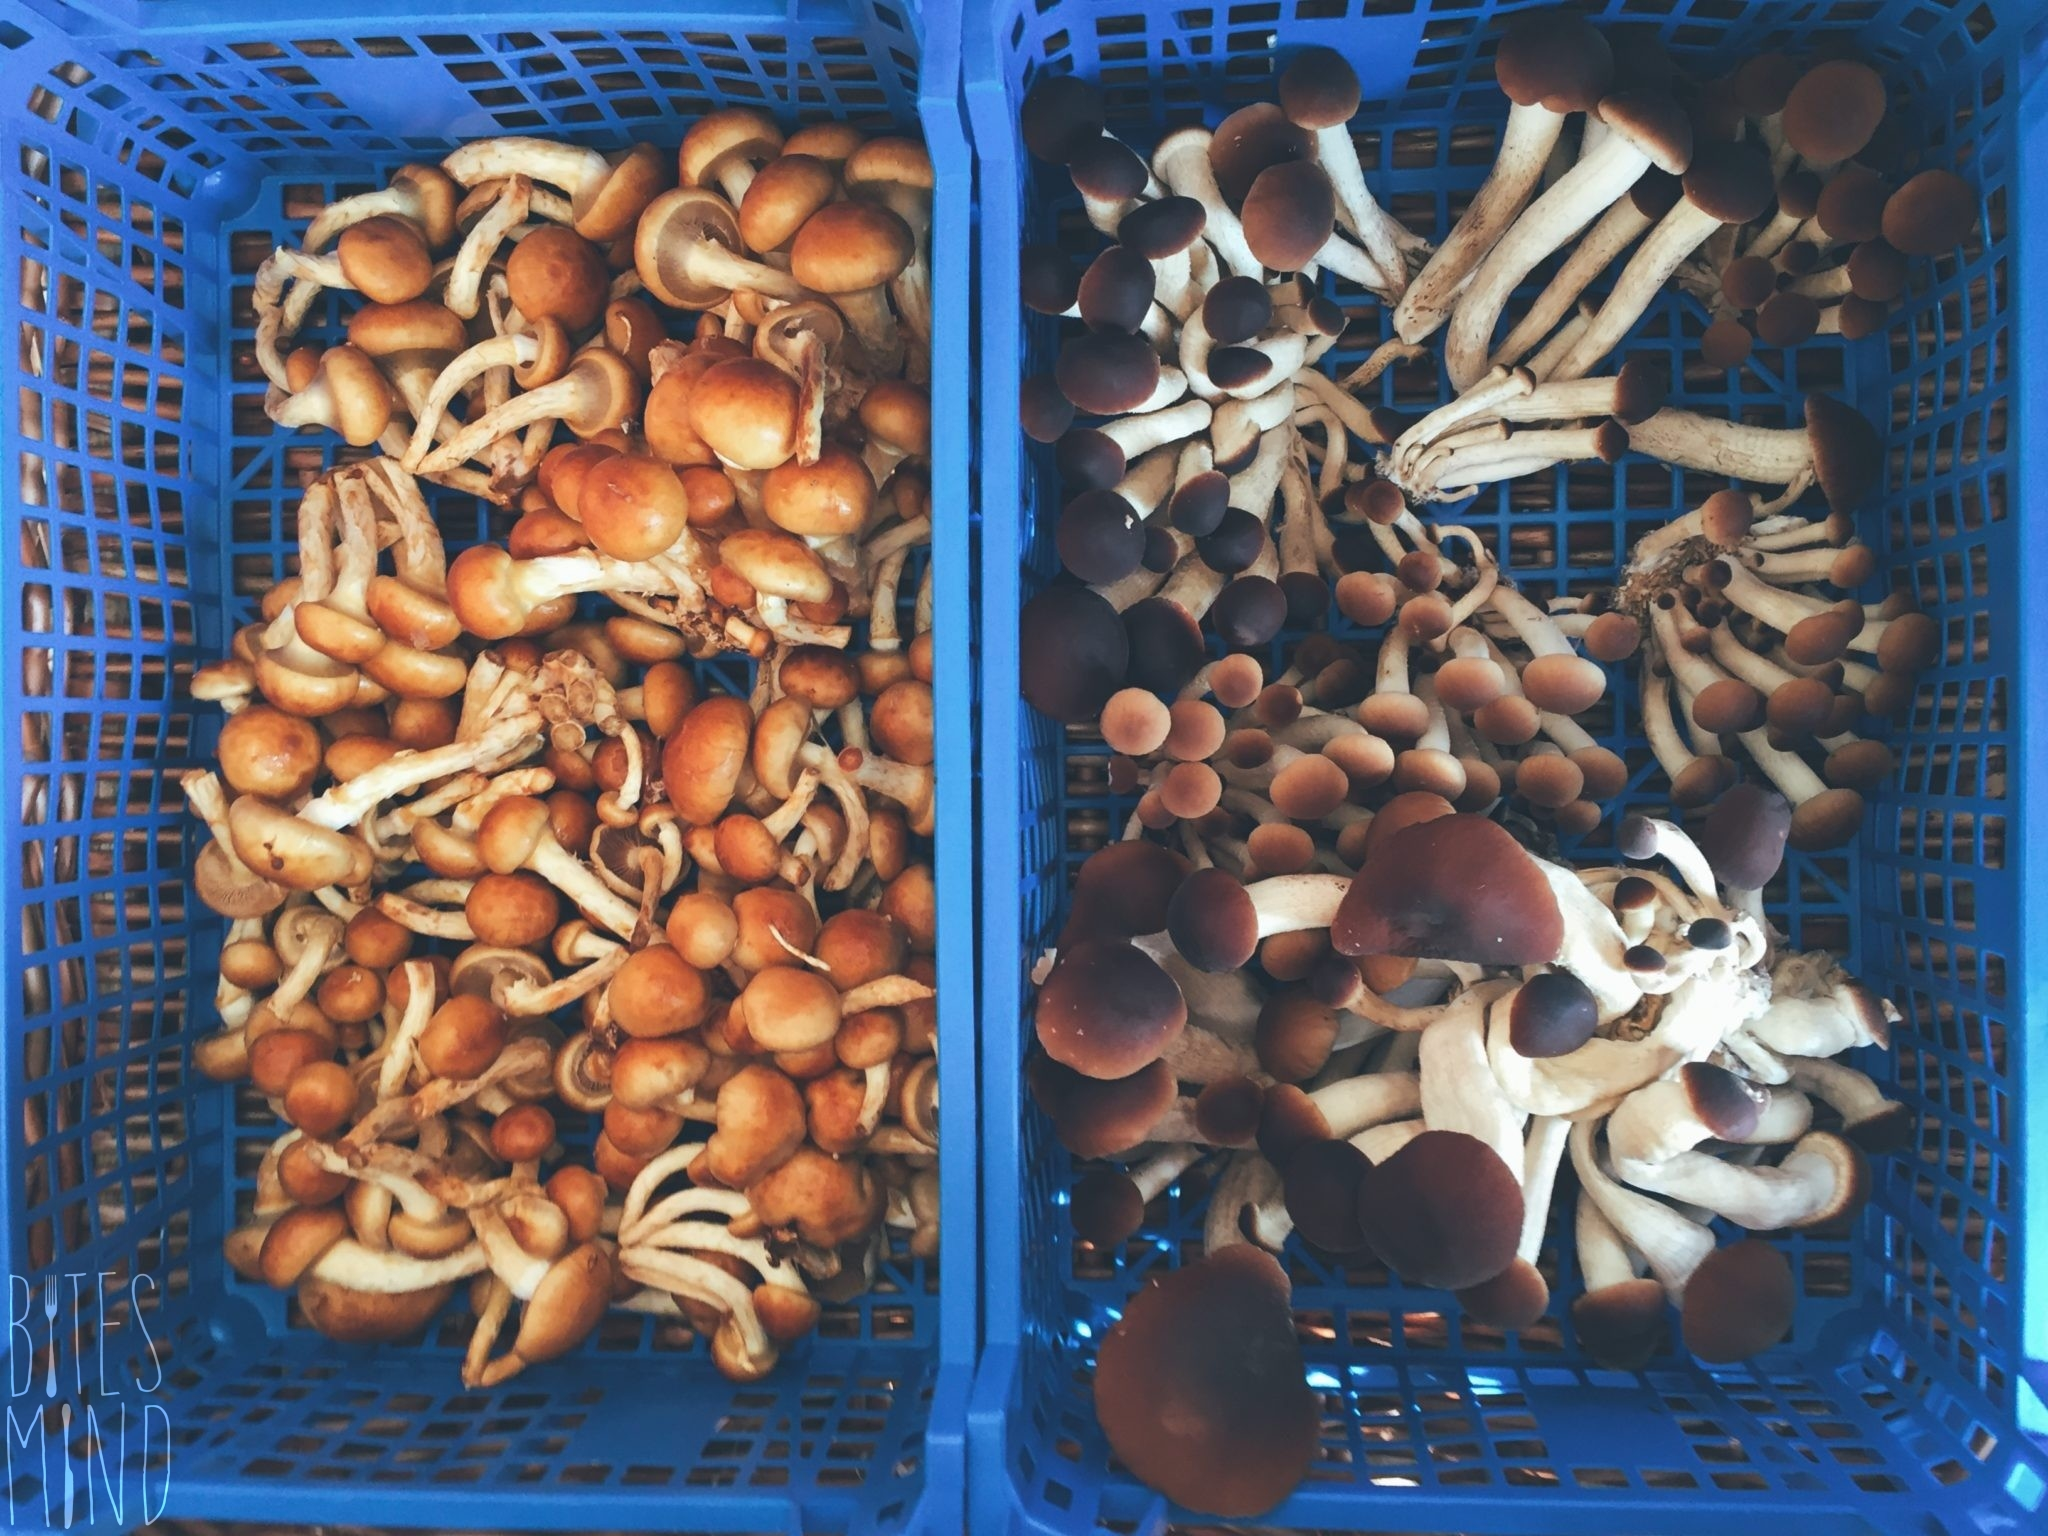 Ökomarkt am Kollwitzplatz - mushrooms